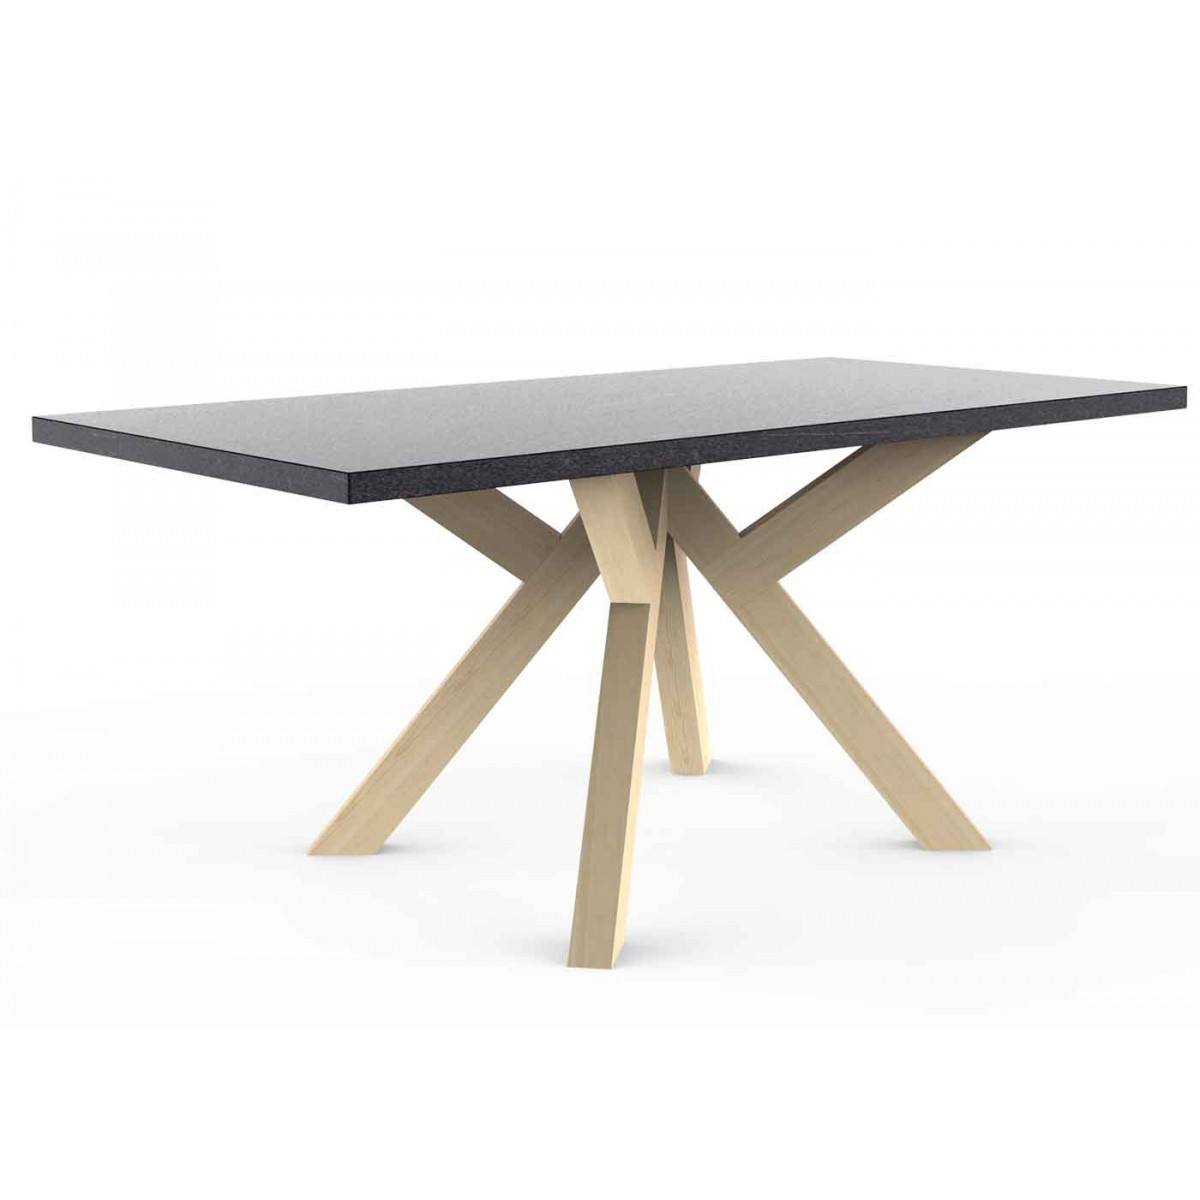 Pi tement design en bois massif pour table manger design for Pietement de table